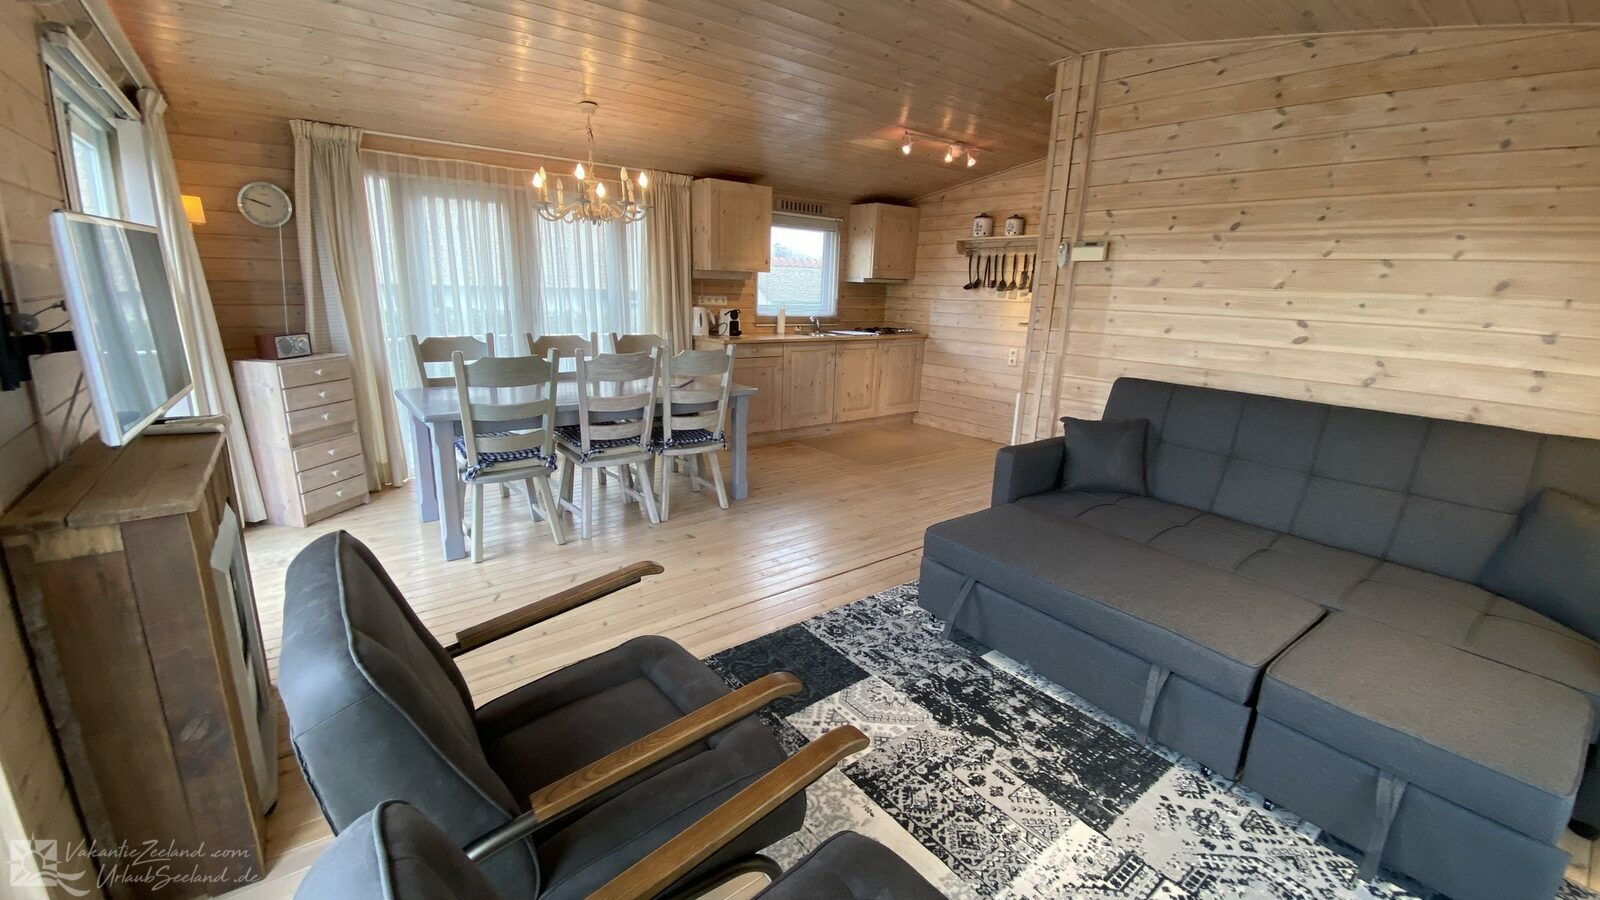 VZ954 Holiday chalet in Sint-Annaland